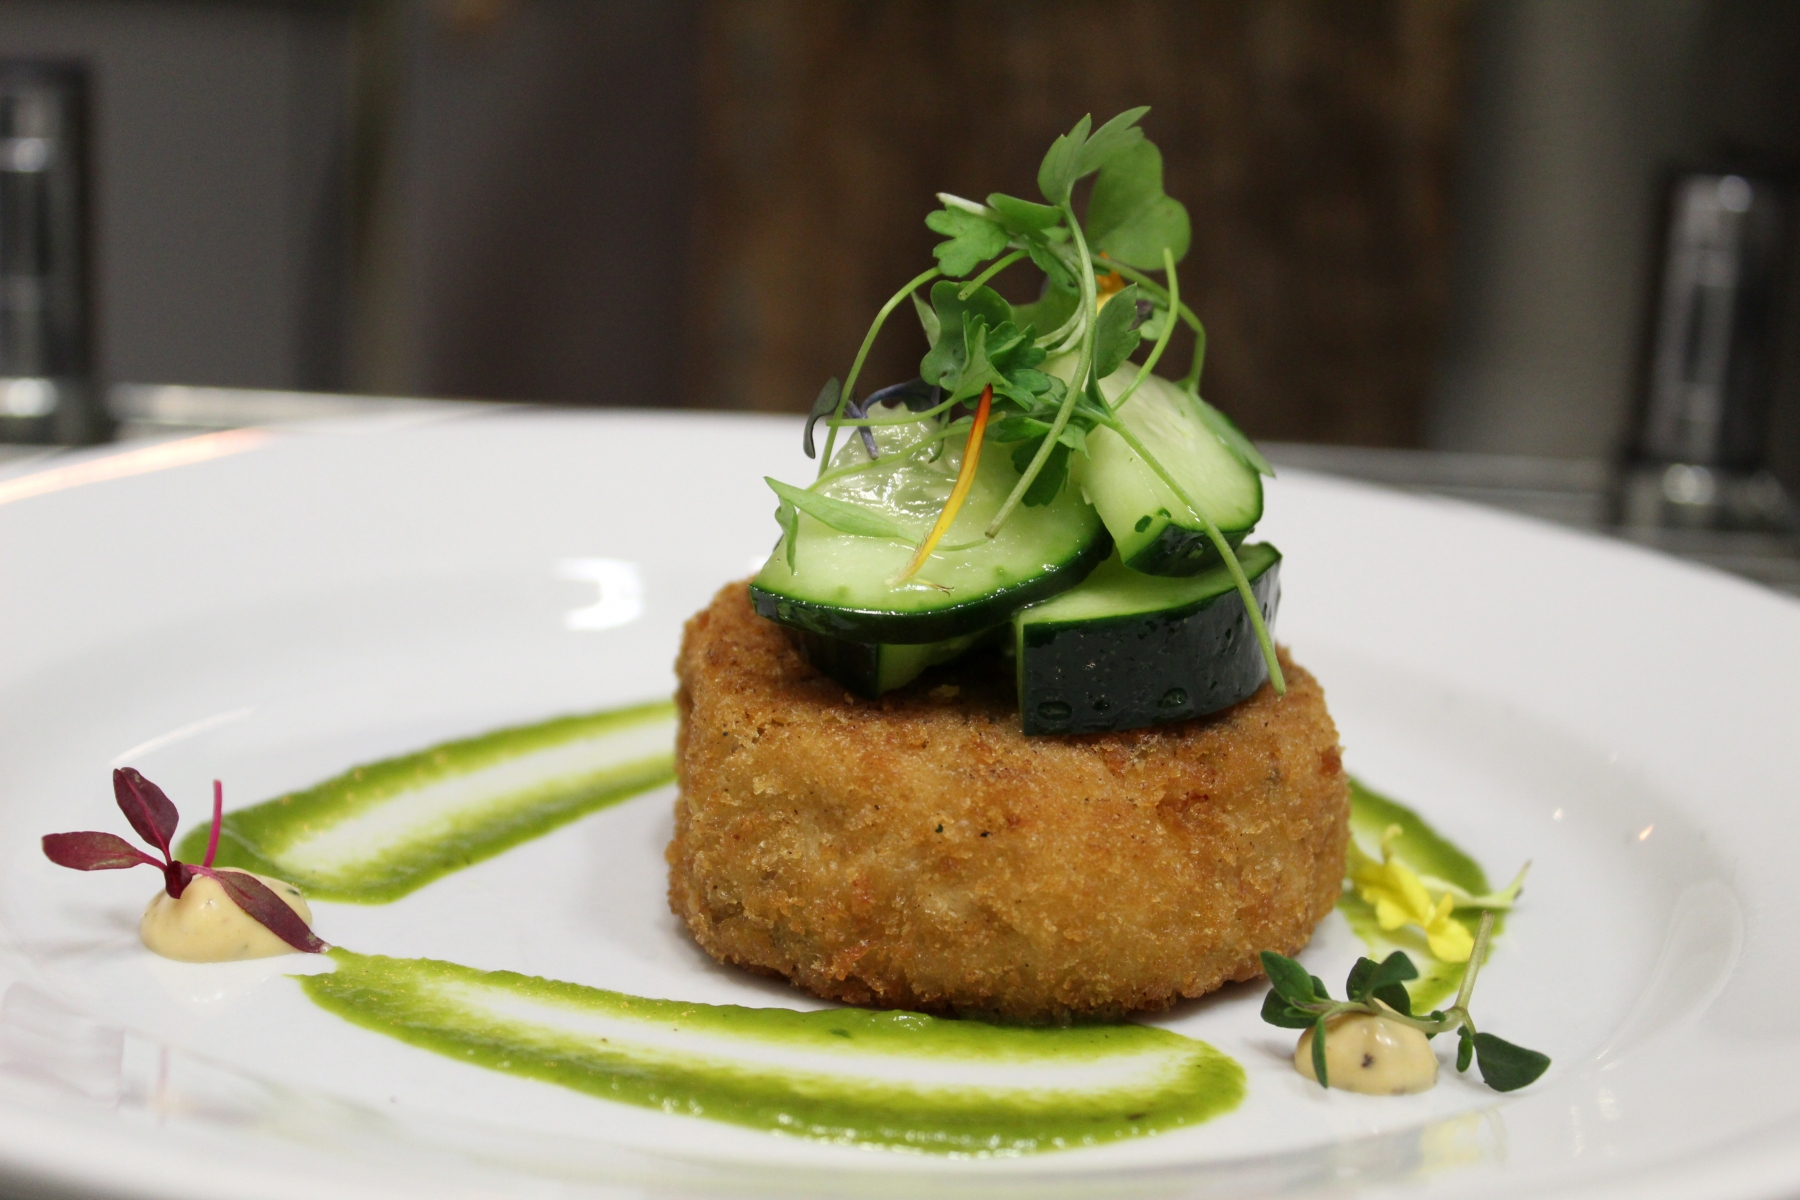 Crab Cake with Avocado Sauce